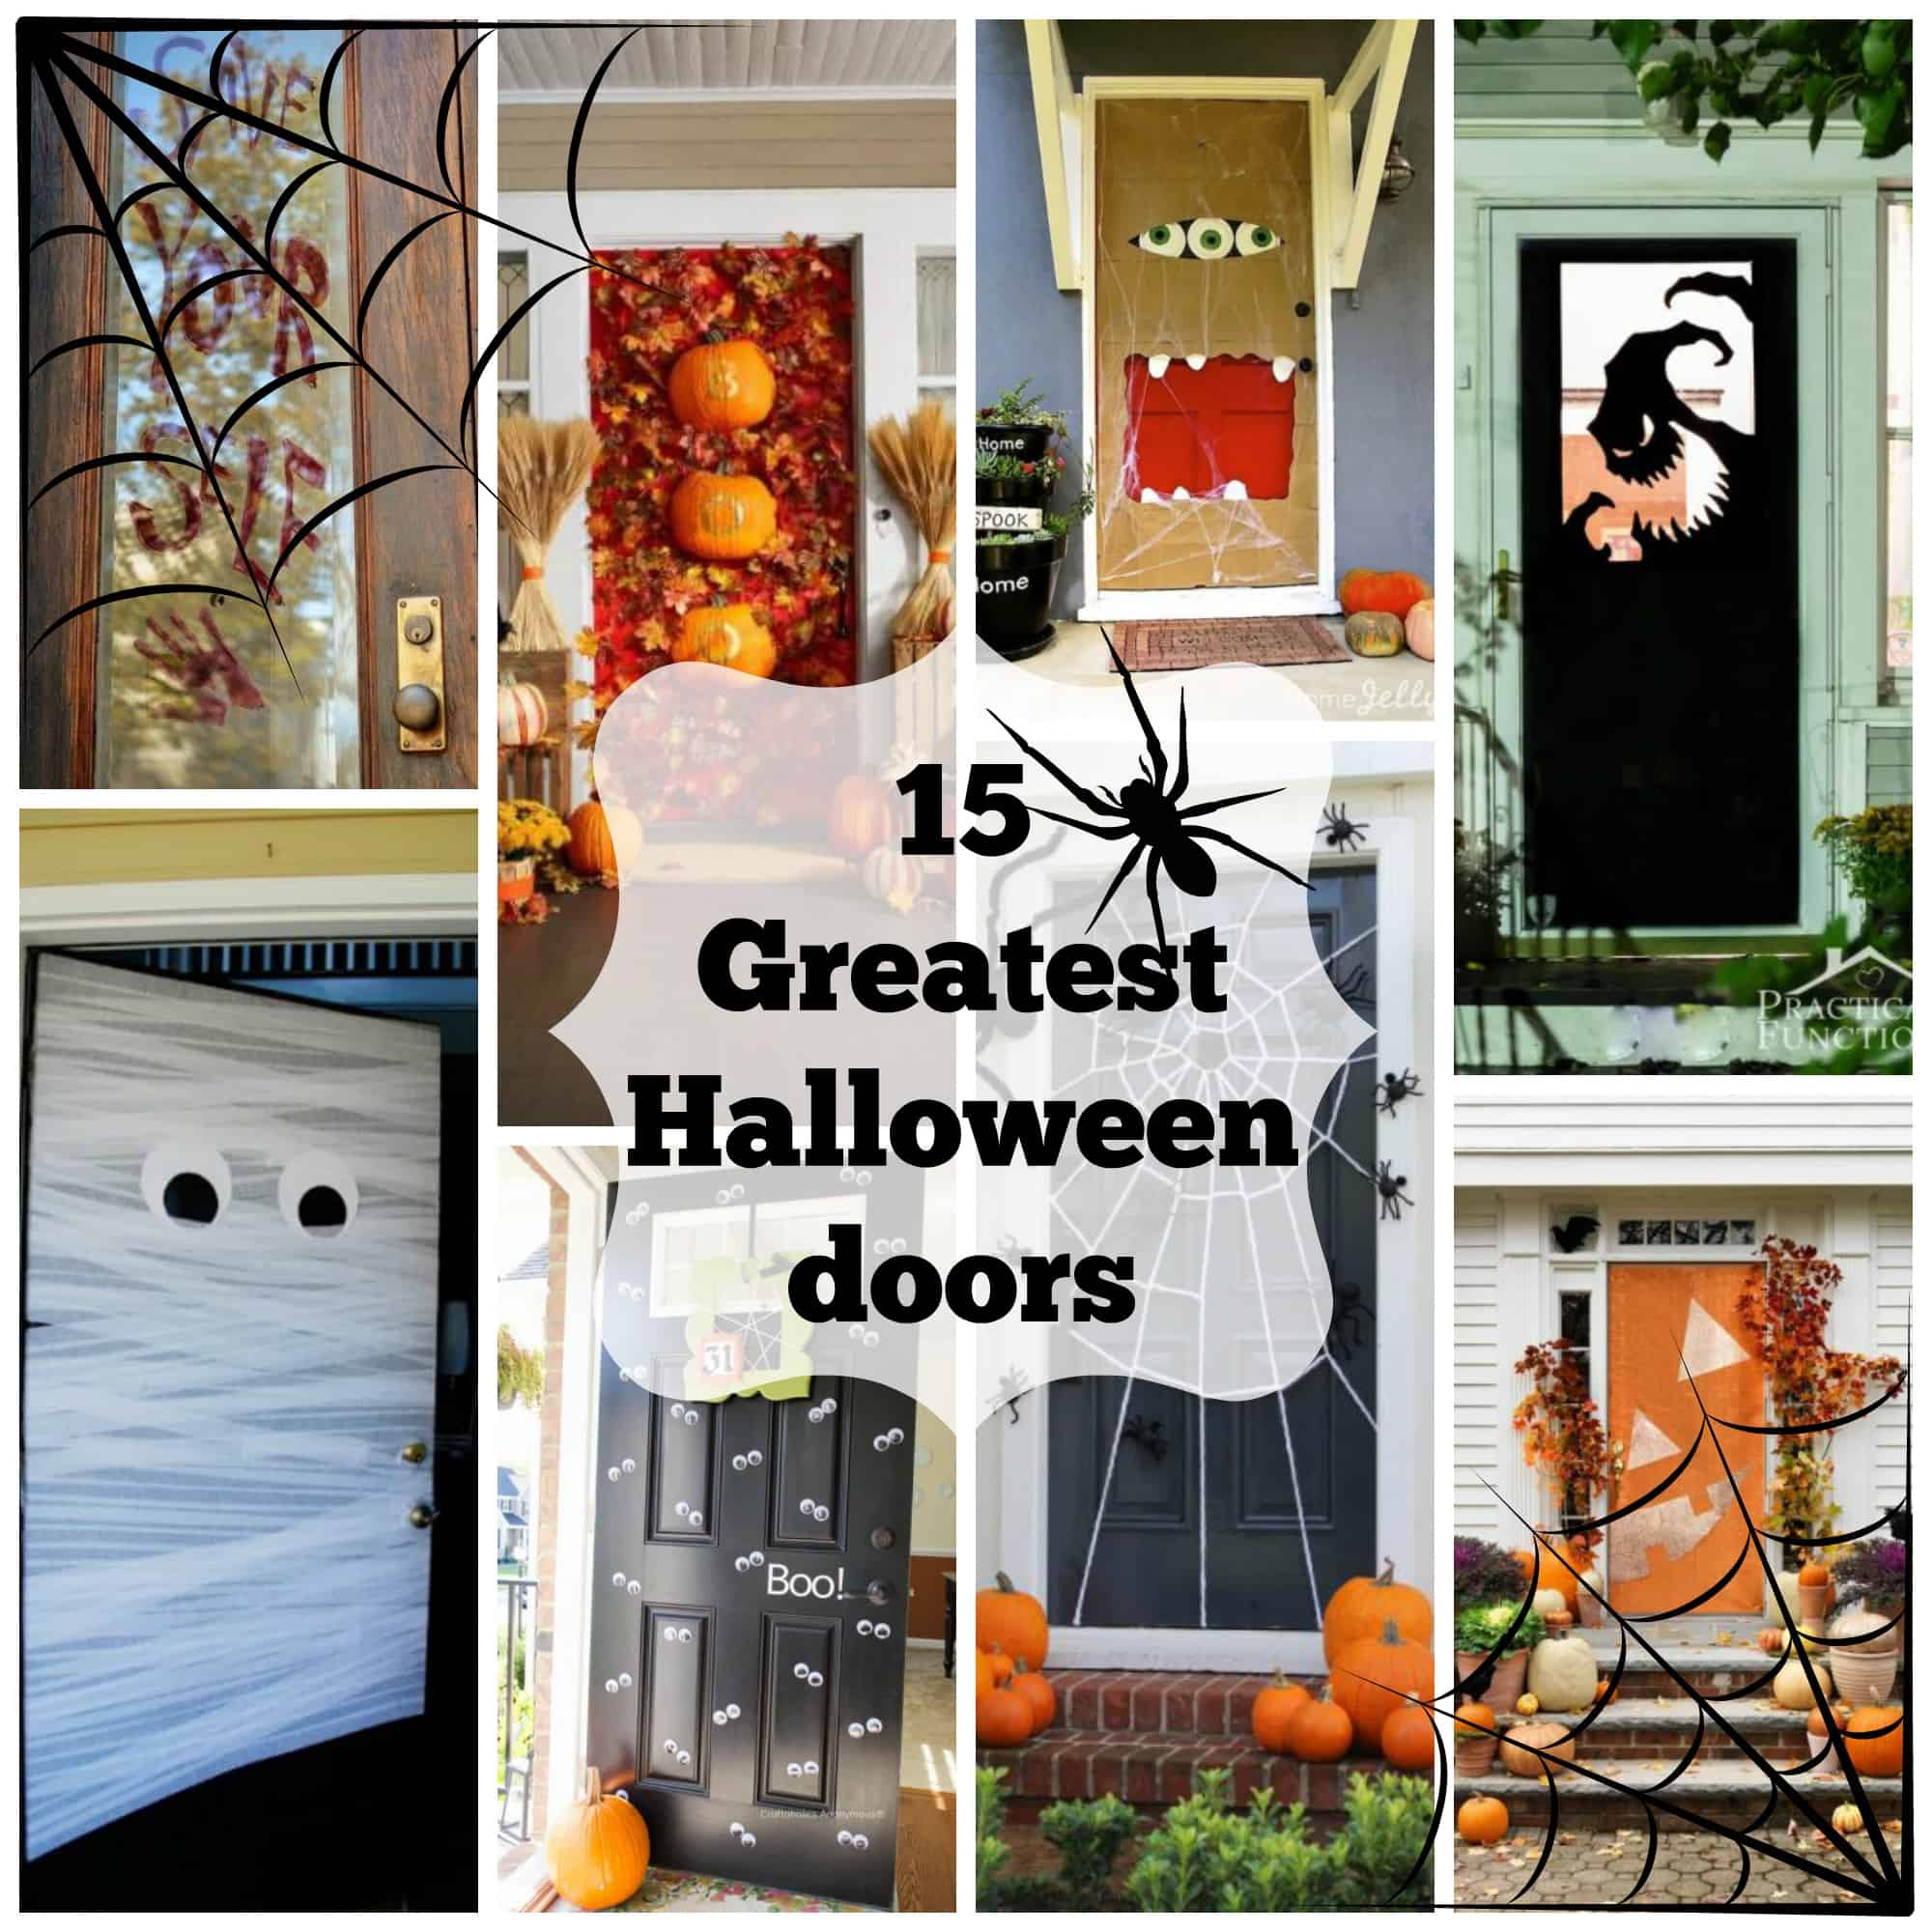 organized decorations them doors because top separate broke into and can window different decor i many greatest mom door forms categories friendly spooky have halloween take down pretty the so kid three